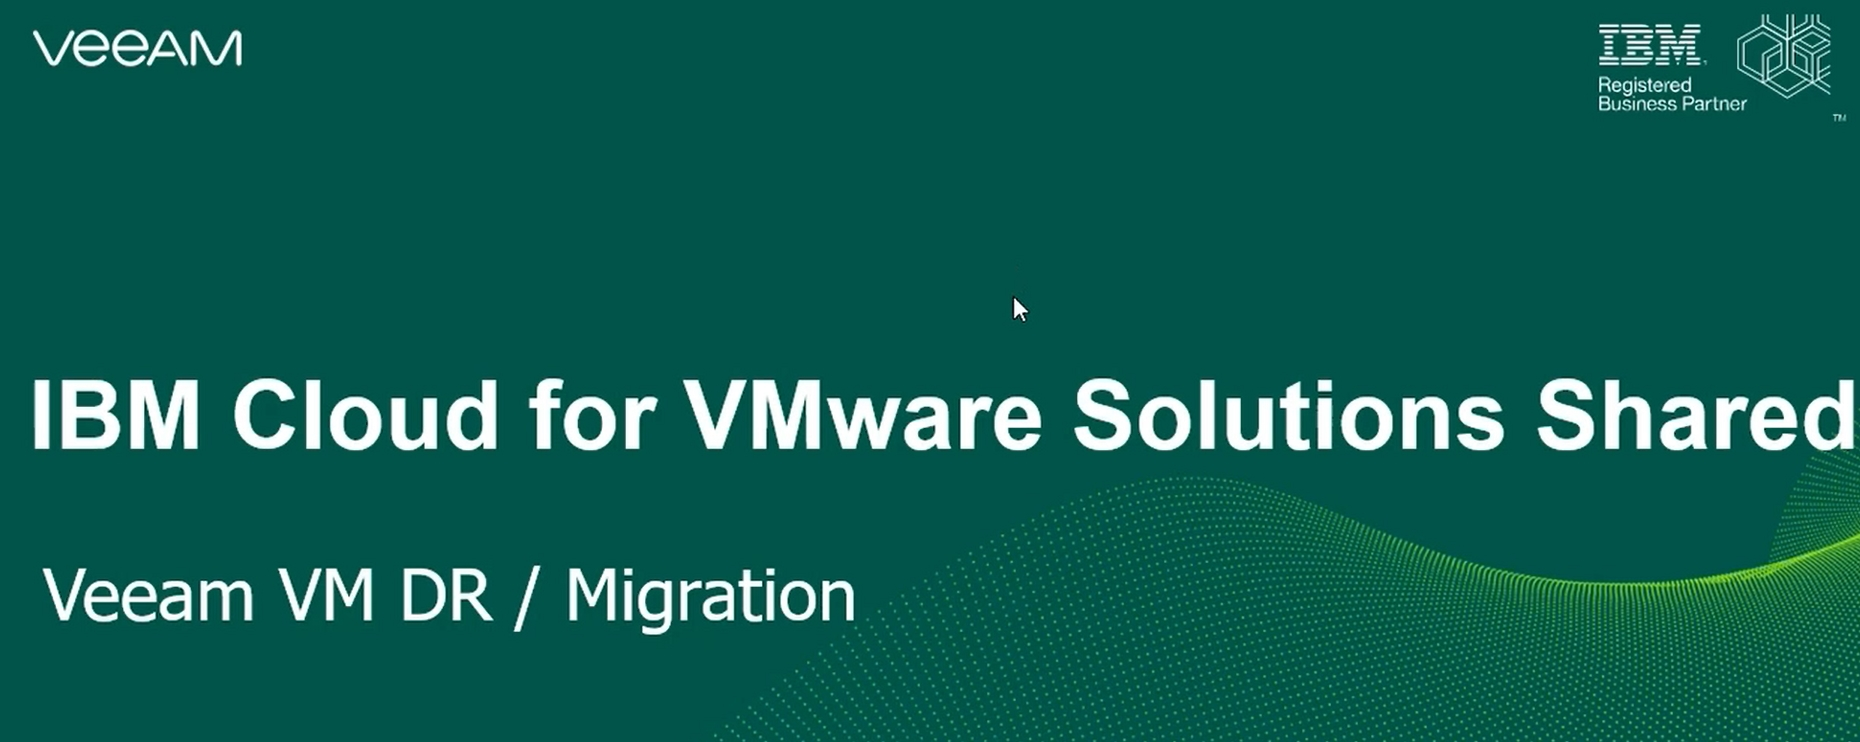 IBM cloud for VMware Solutions Shared – Veeam DR & Migration Demo